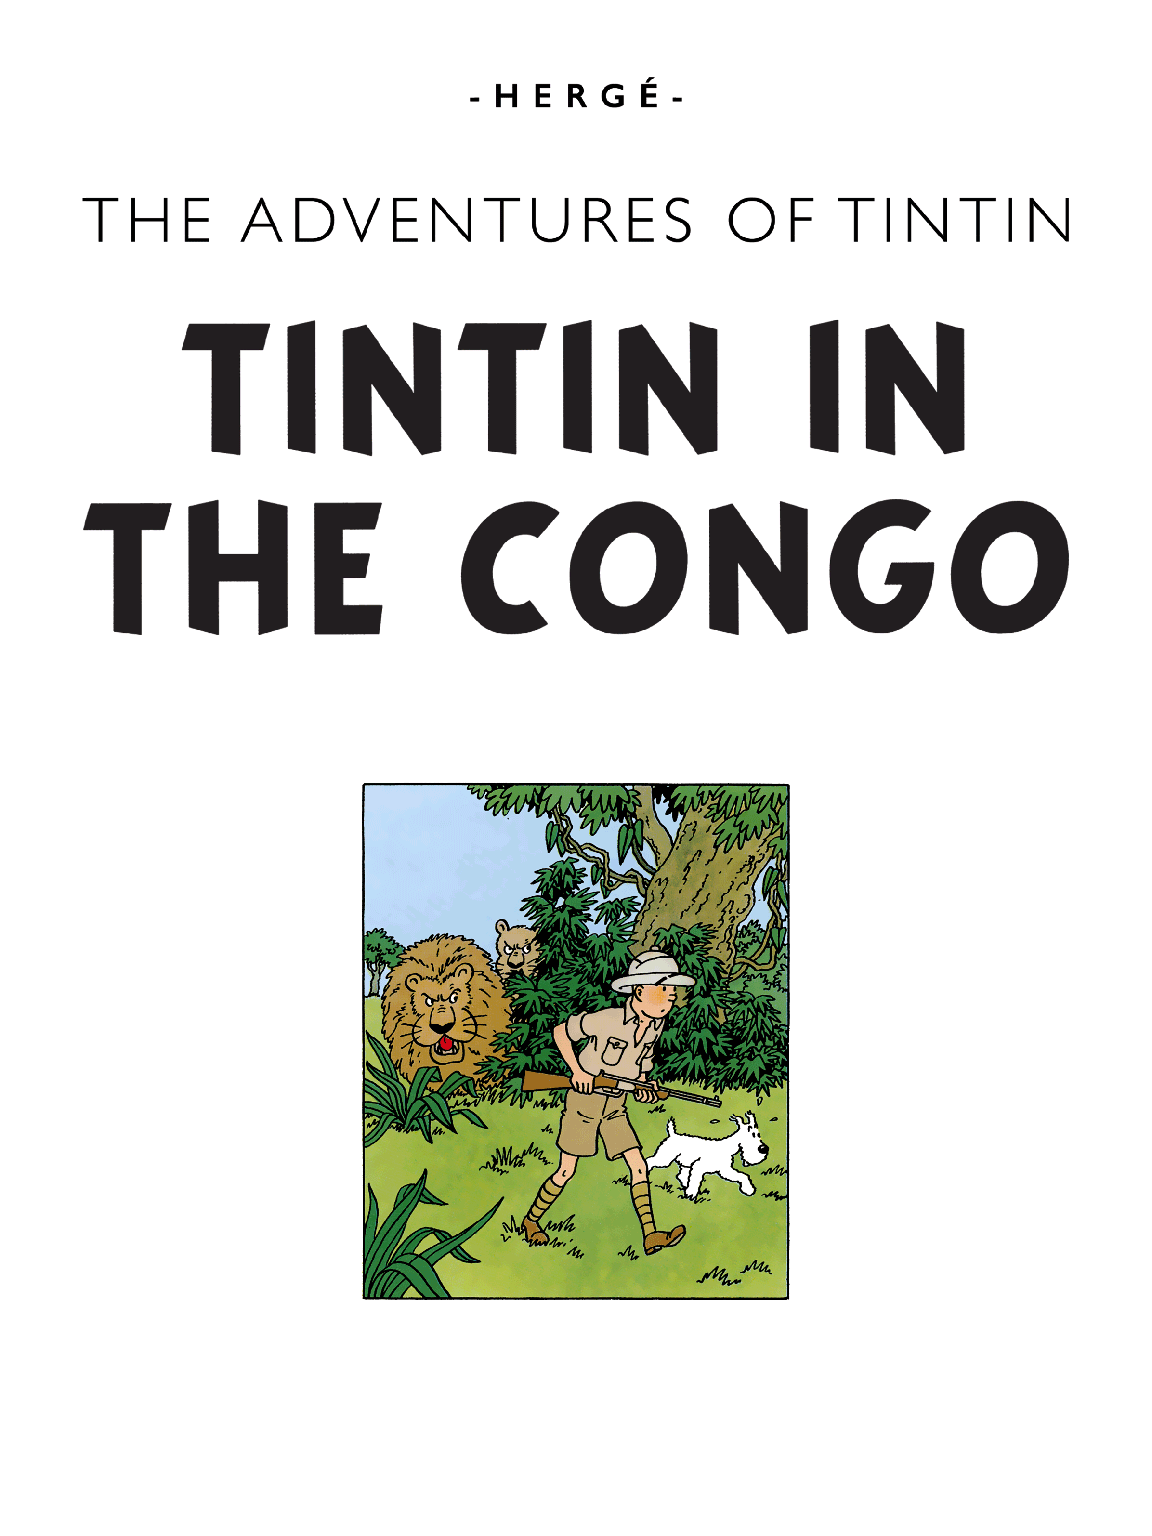 Tintin in the Congo - Title page